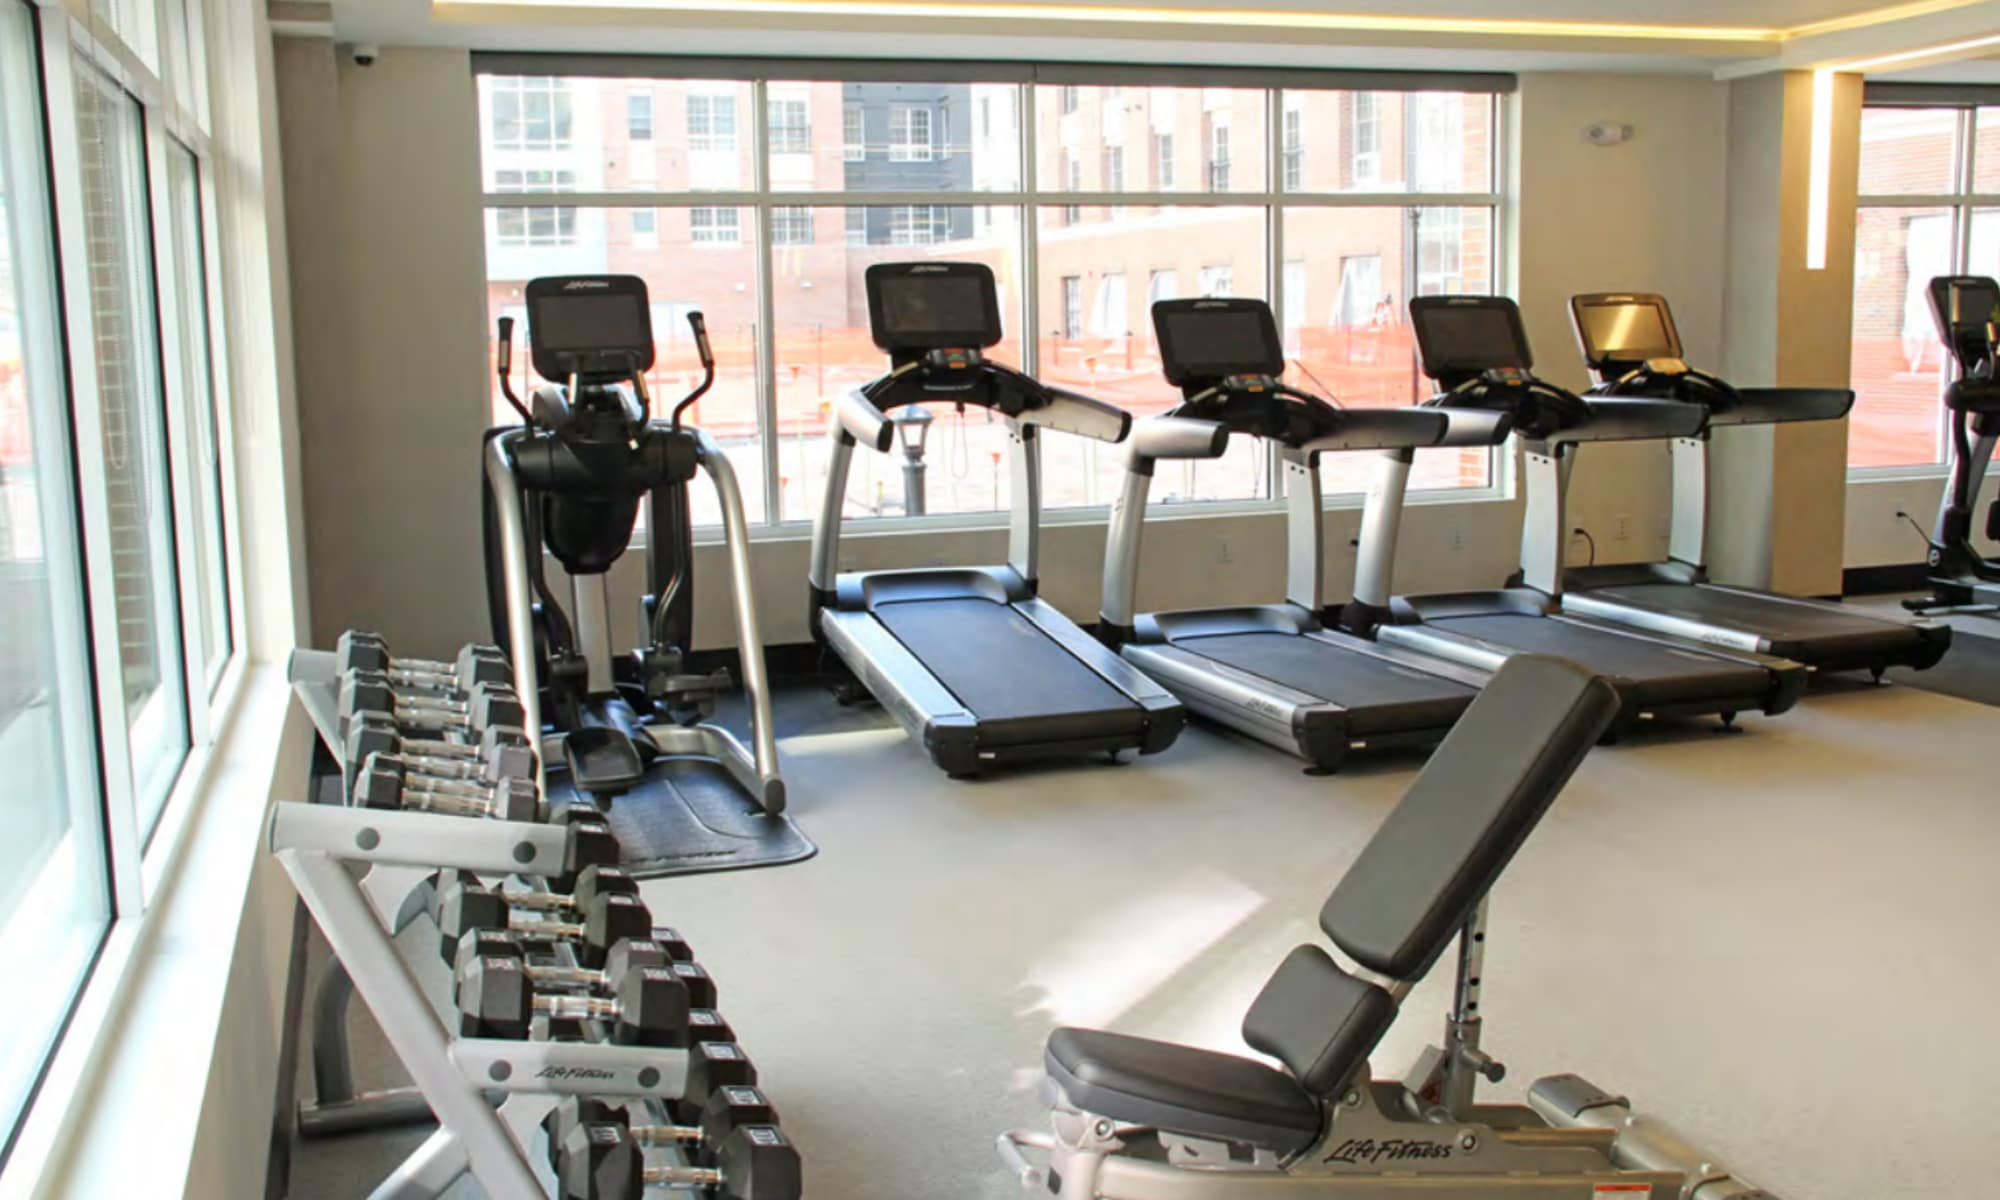 Enjoy our modern firtness center at The Harper at Harmon Meadow in Secaucus